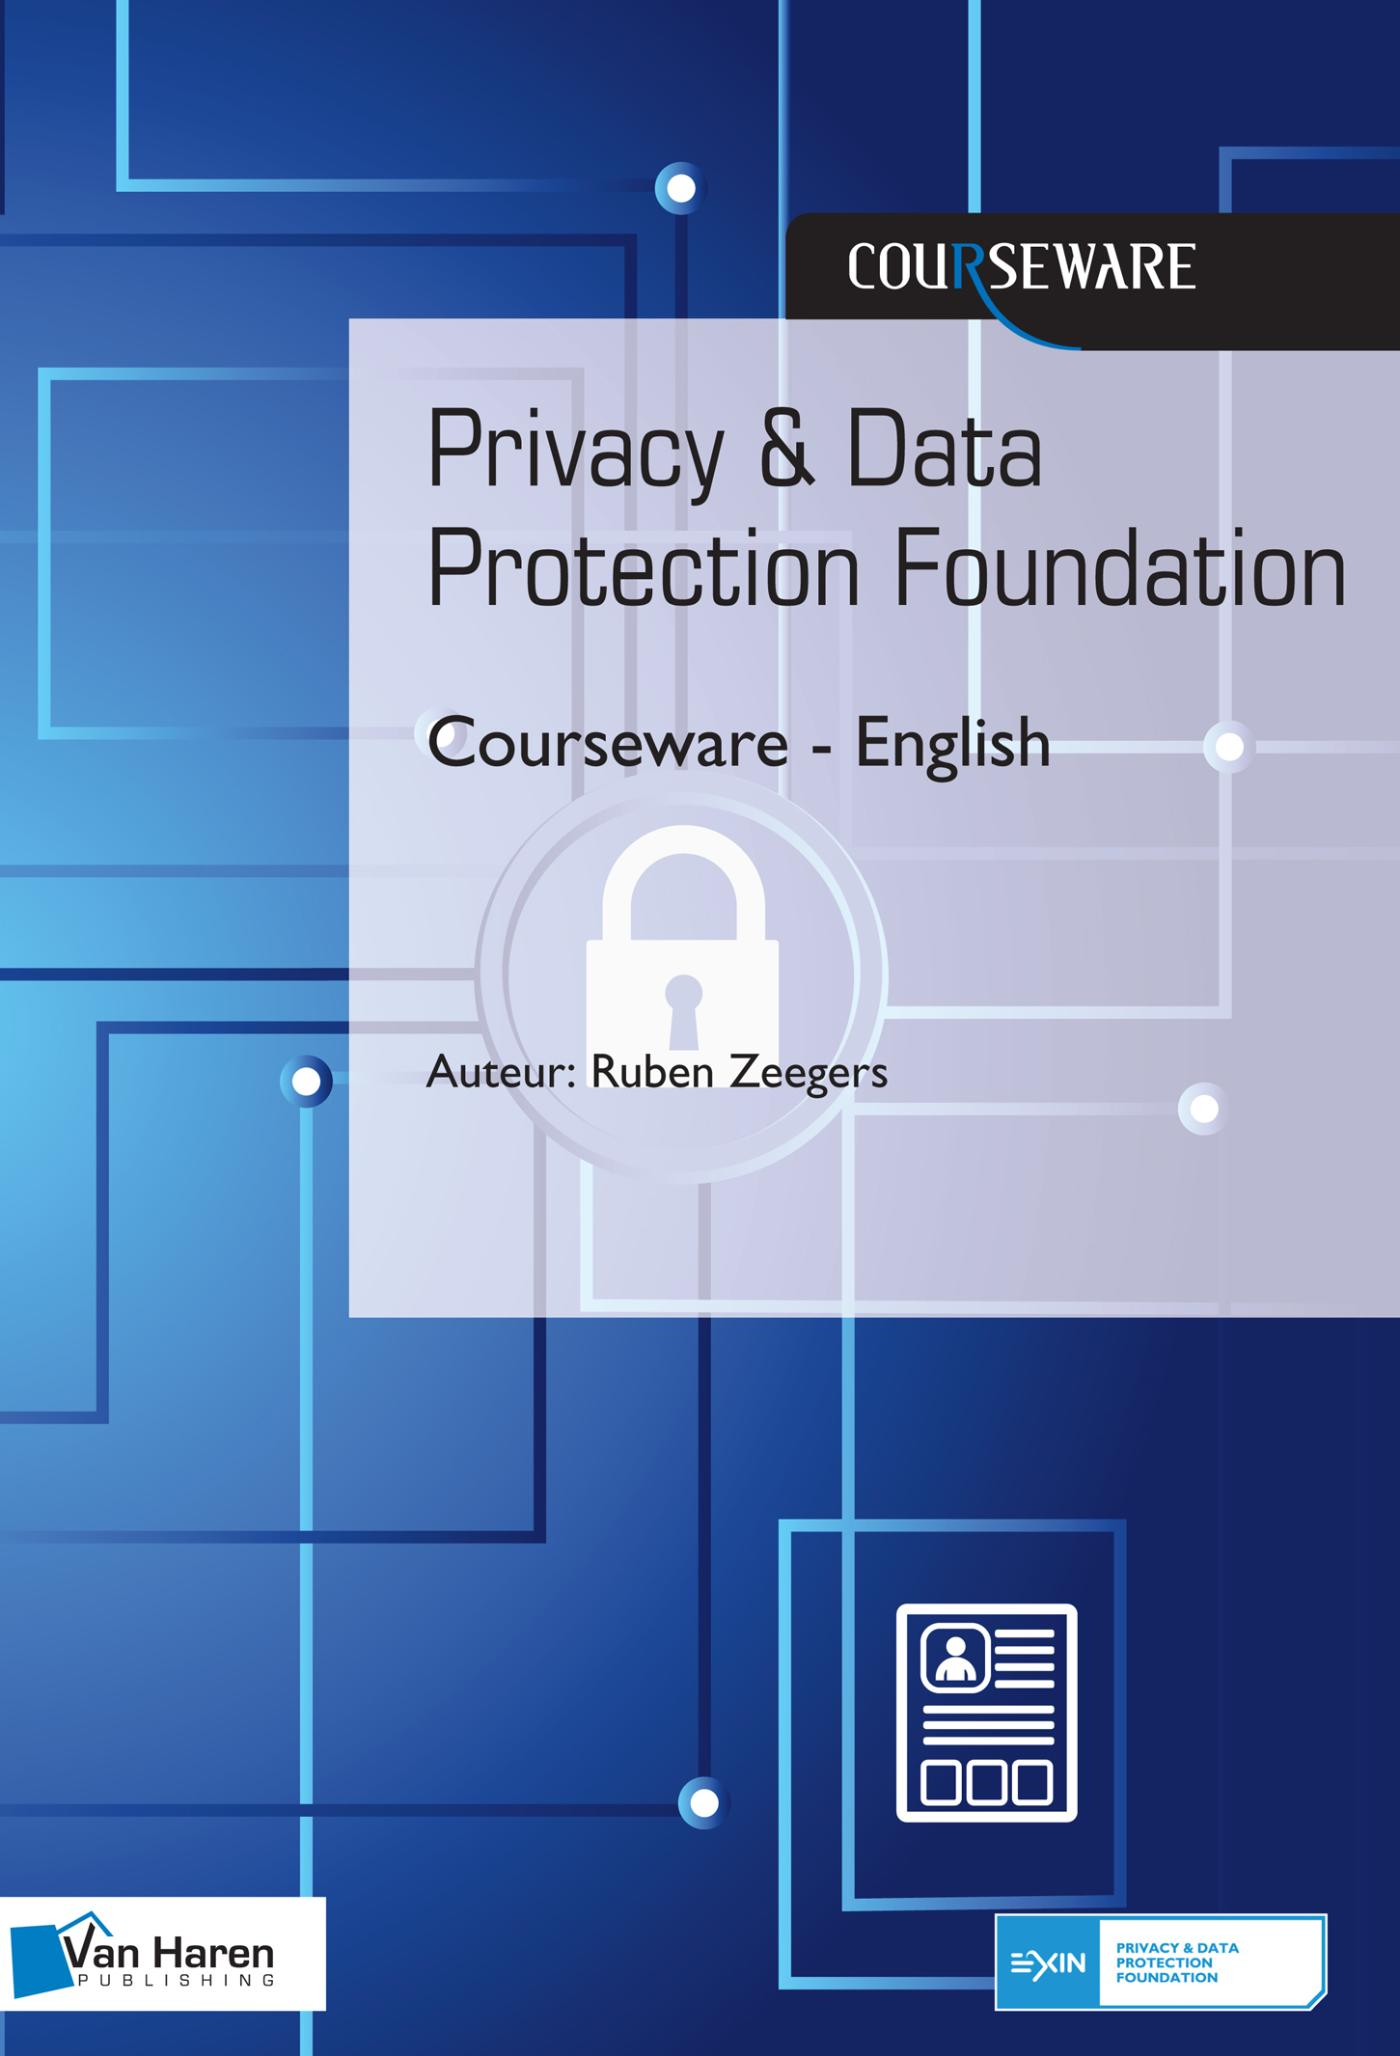 Privacy & Data Protection Foundation Courseware - English